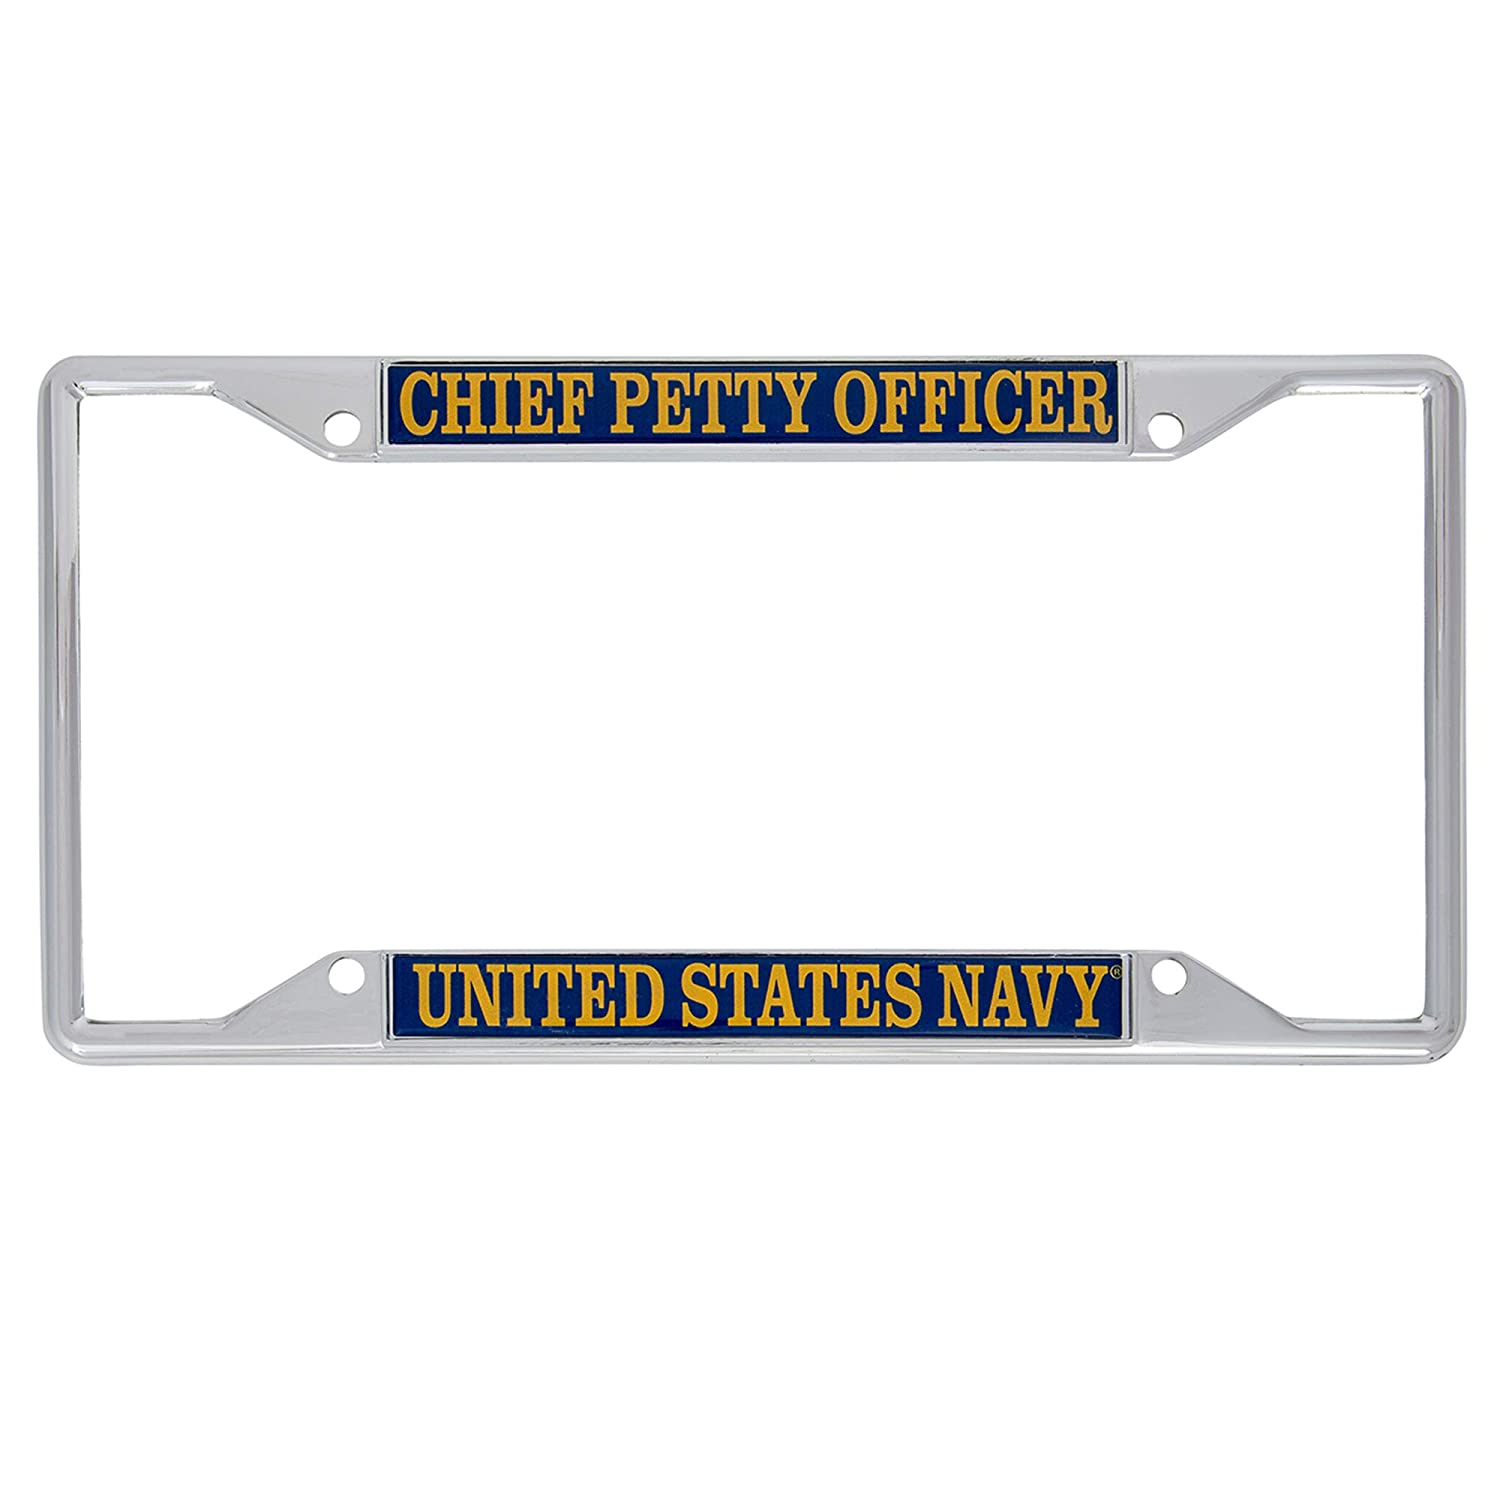 Desert Cactus US Navy Chief Petty Officer Enlisted Grades License Plate Frame for Front Back of Car Officially Licensed United States